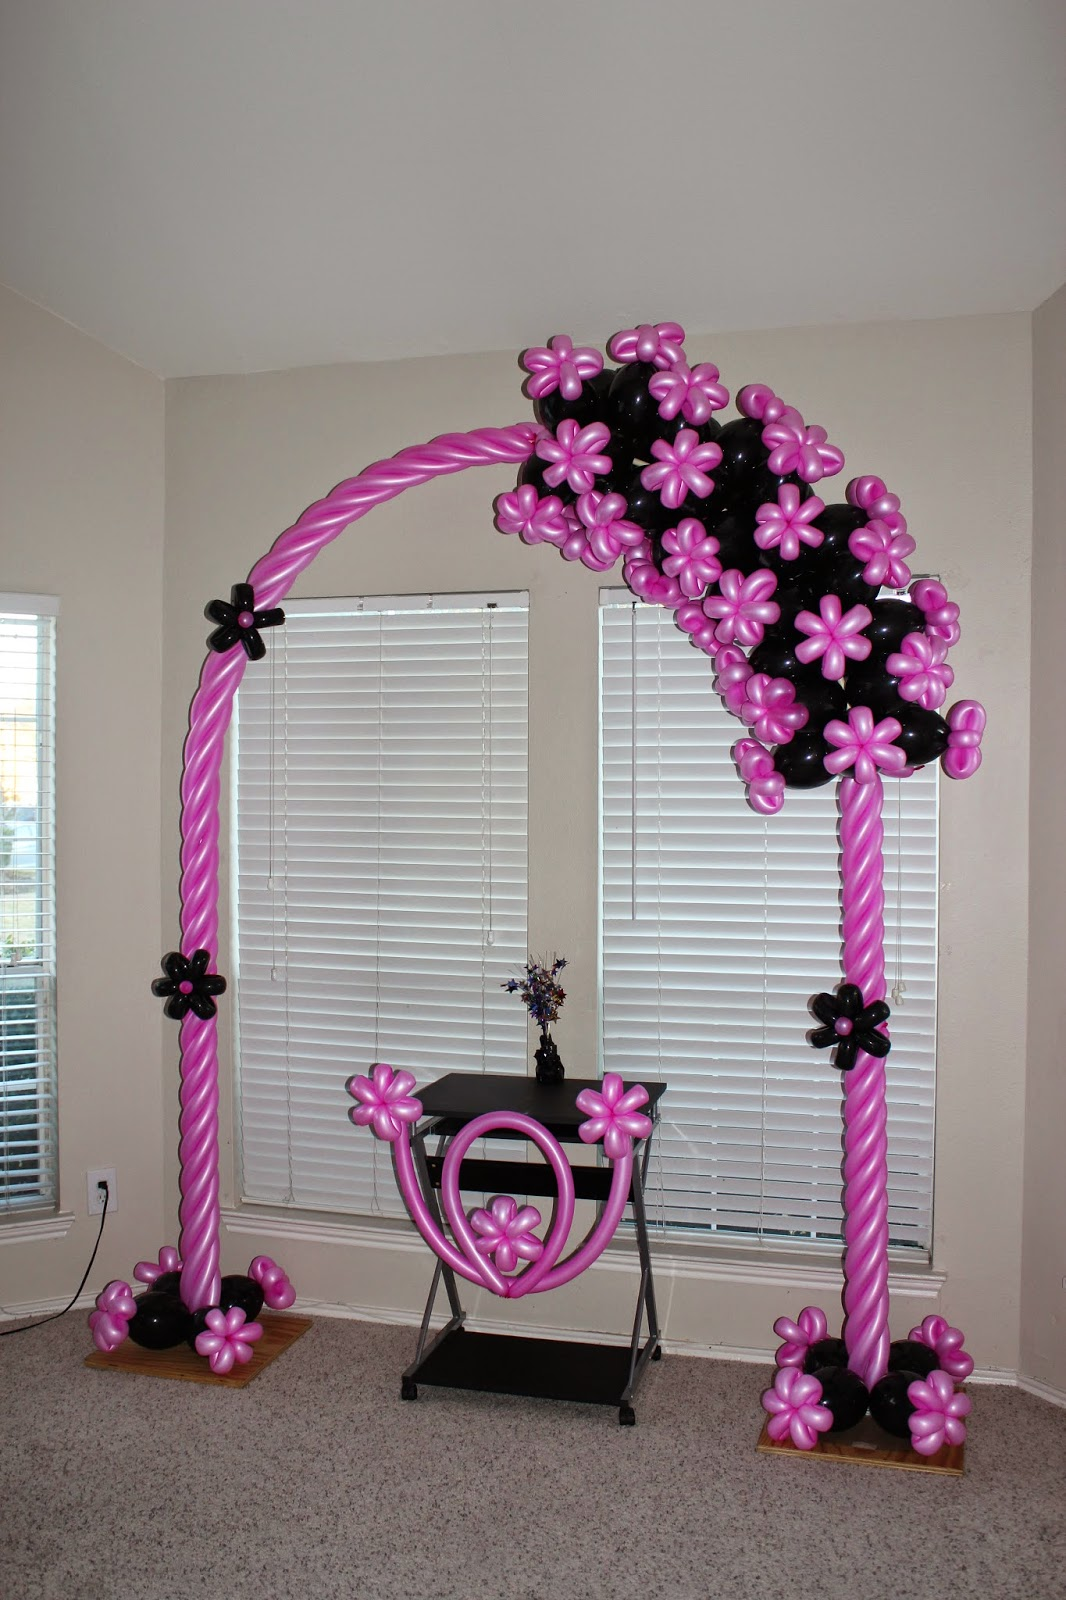 Santo diamond balloon design pink black balloon arch for Balloon decoration arches